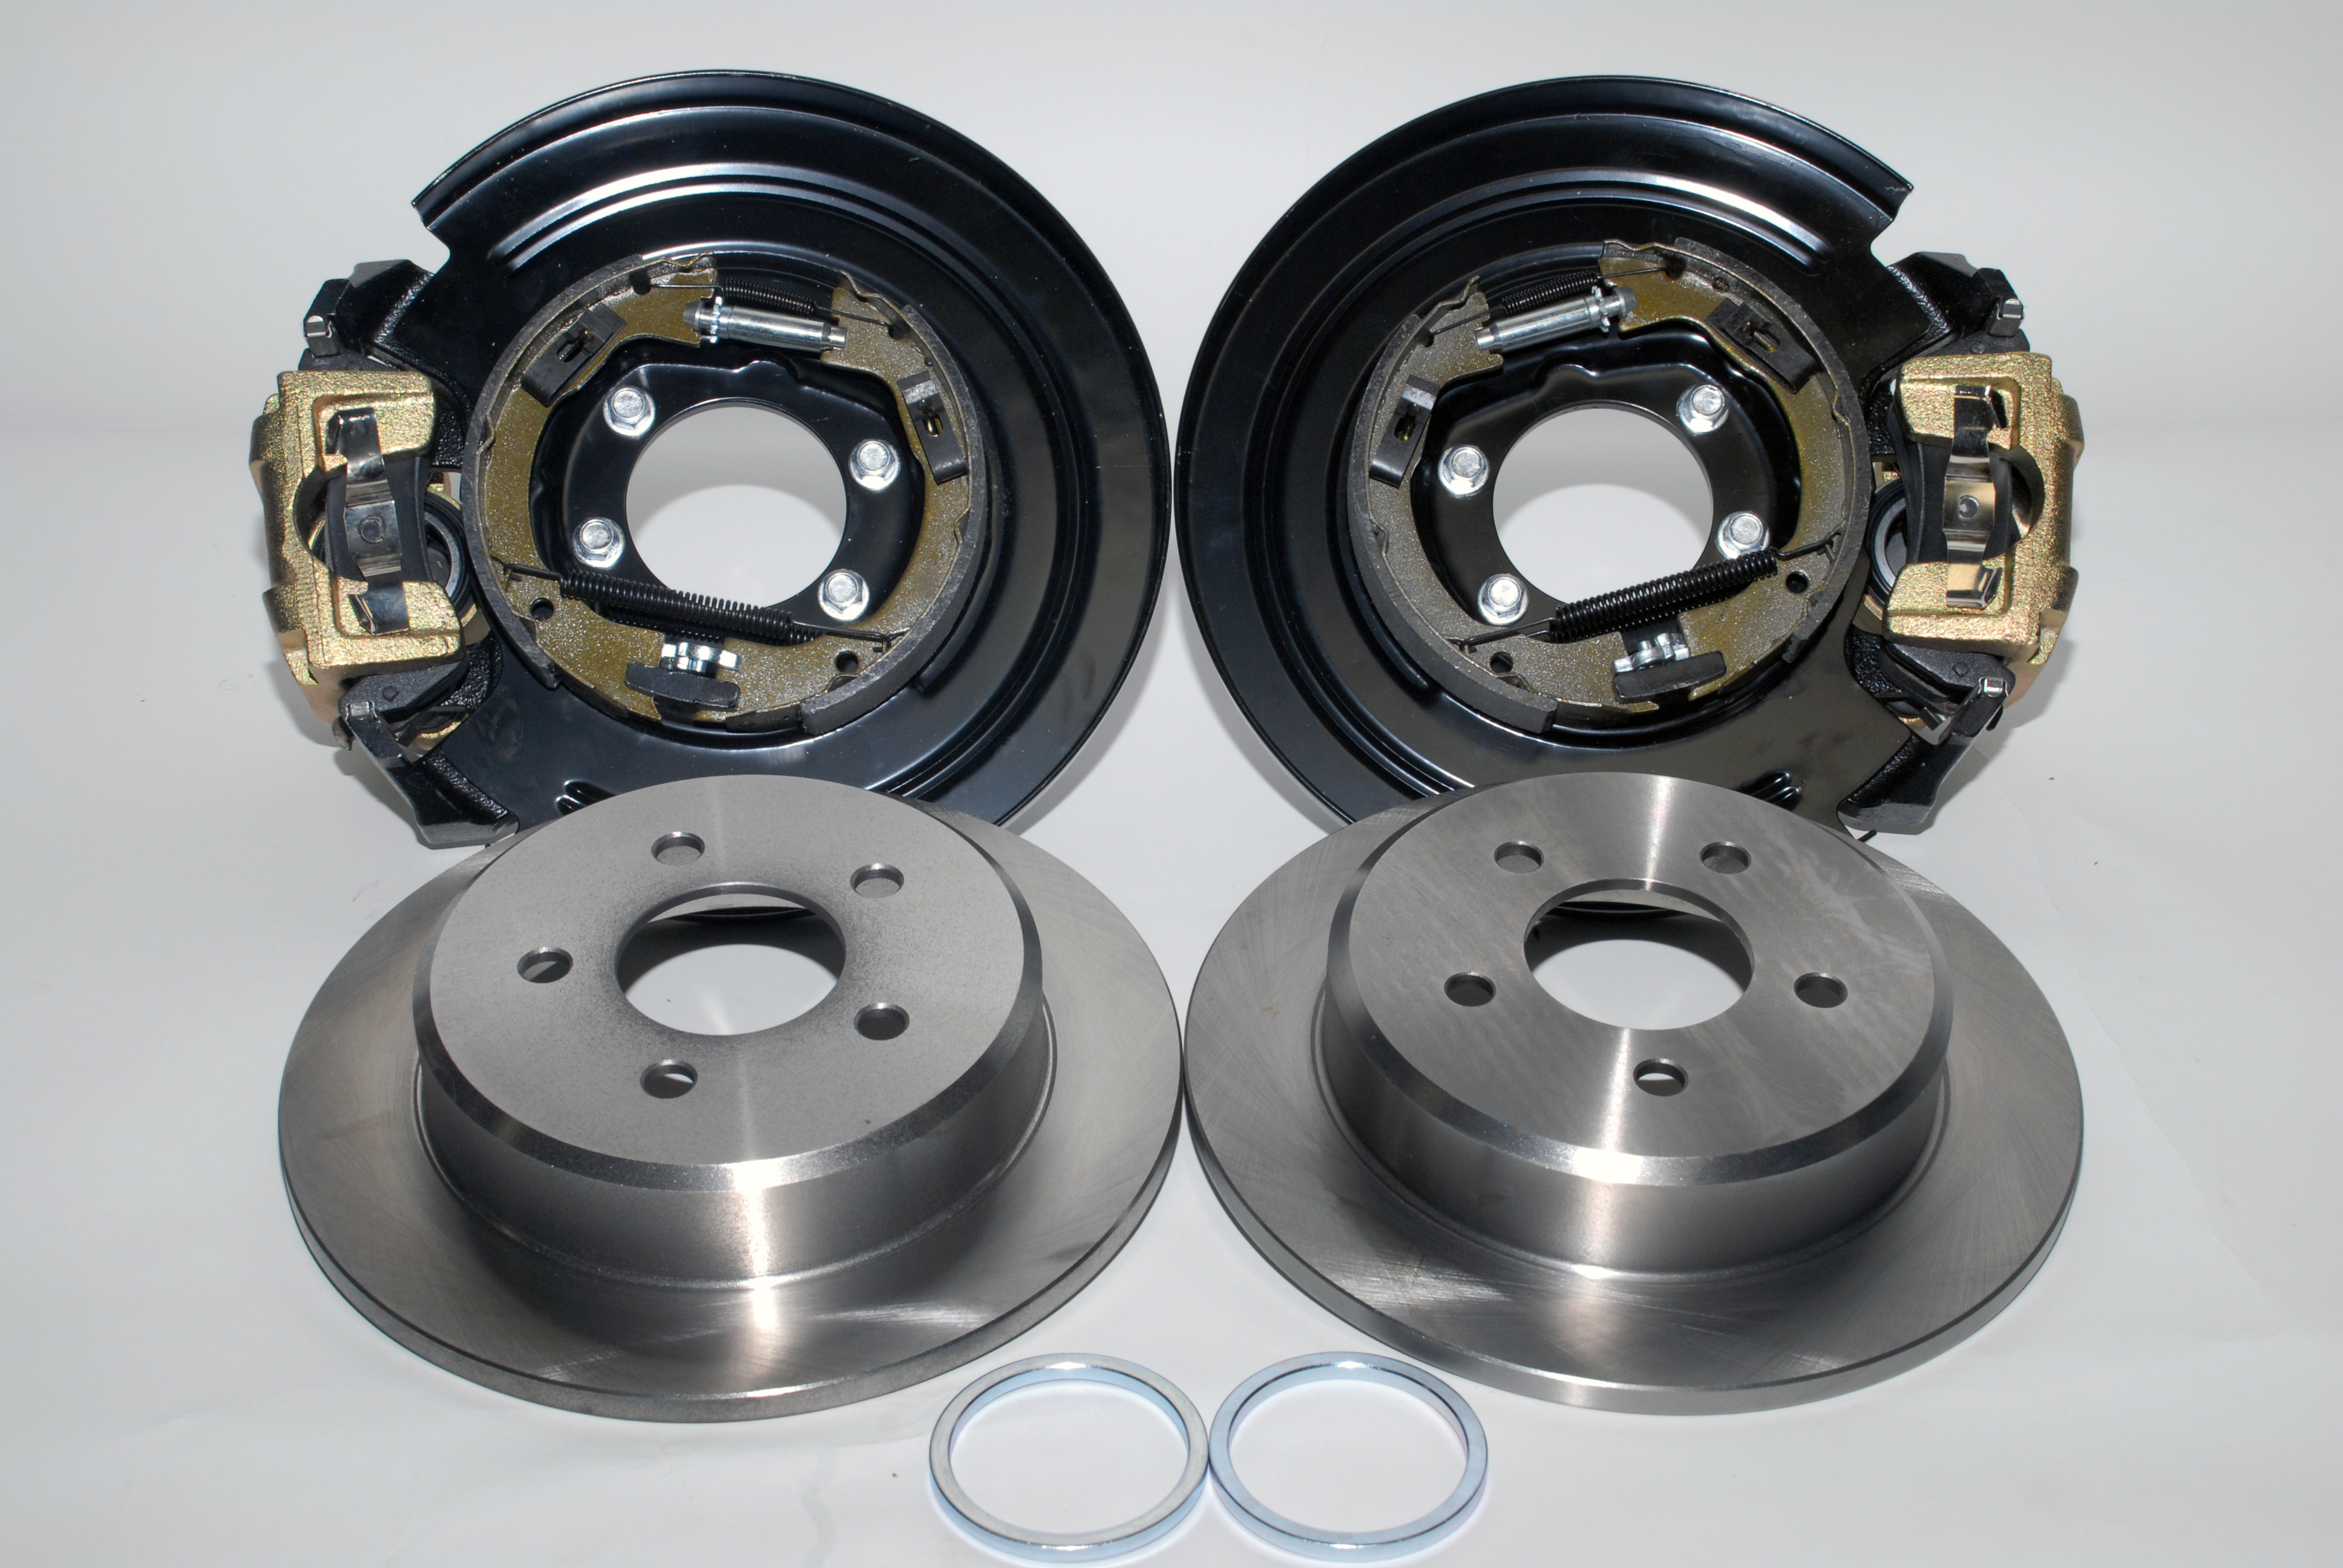 Part # 6300G - Ford Explorer Disc Brake Kit